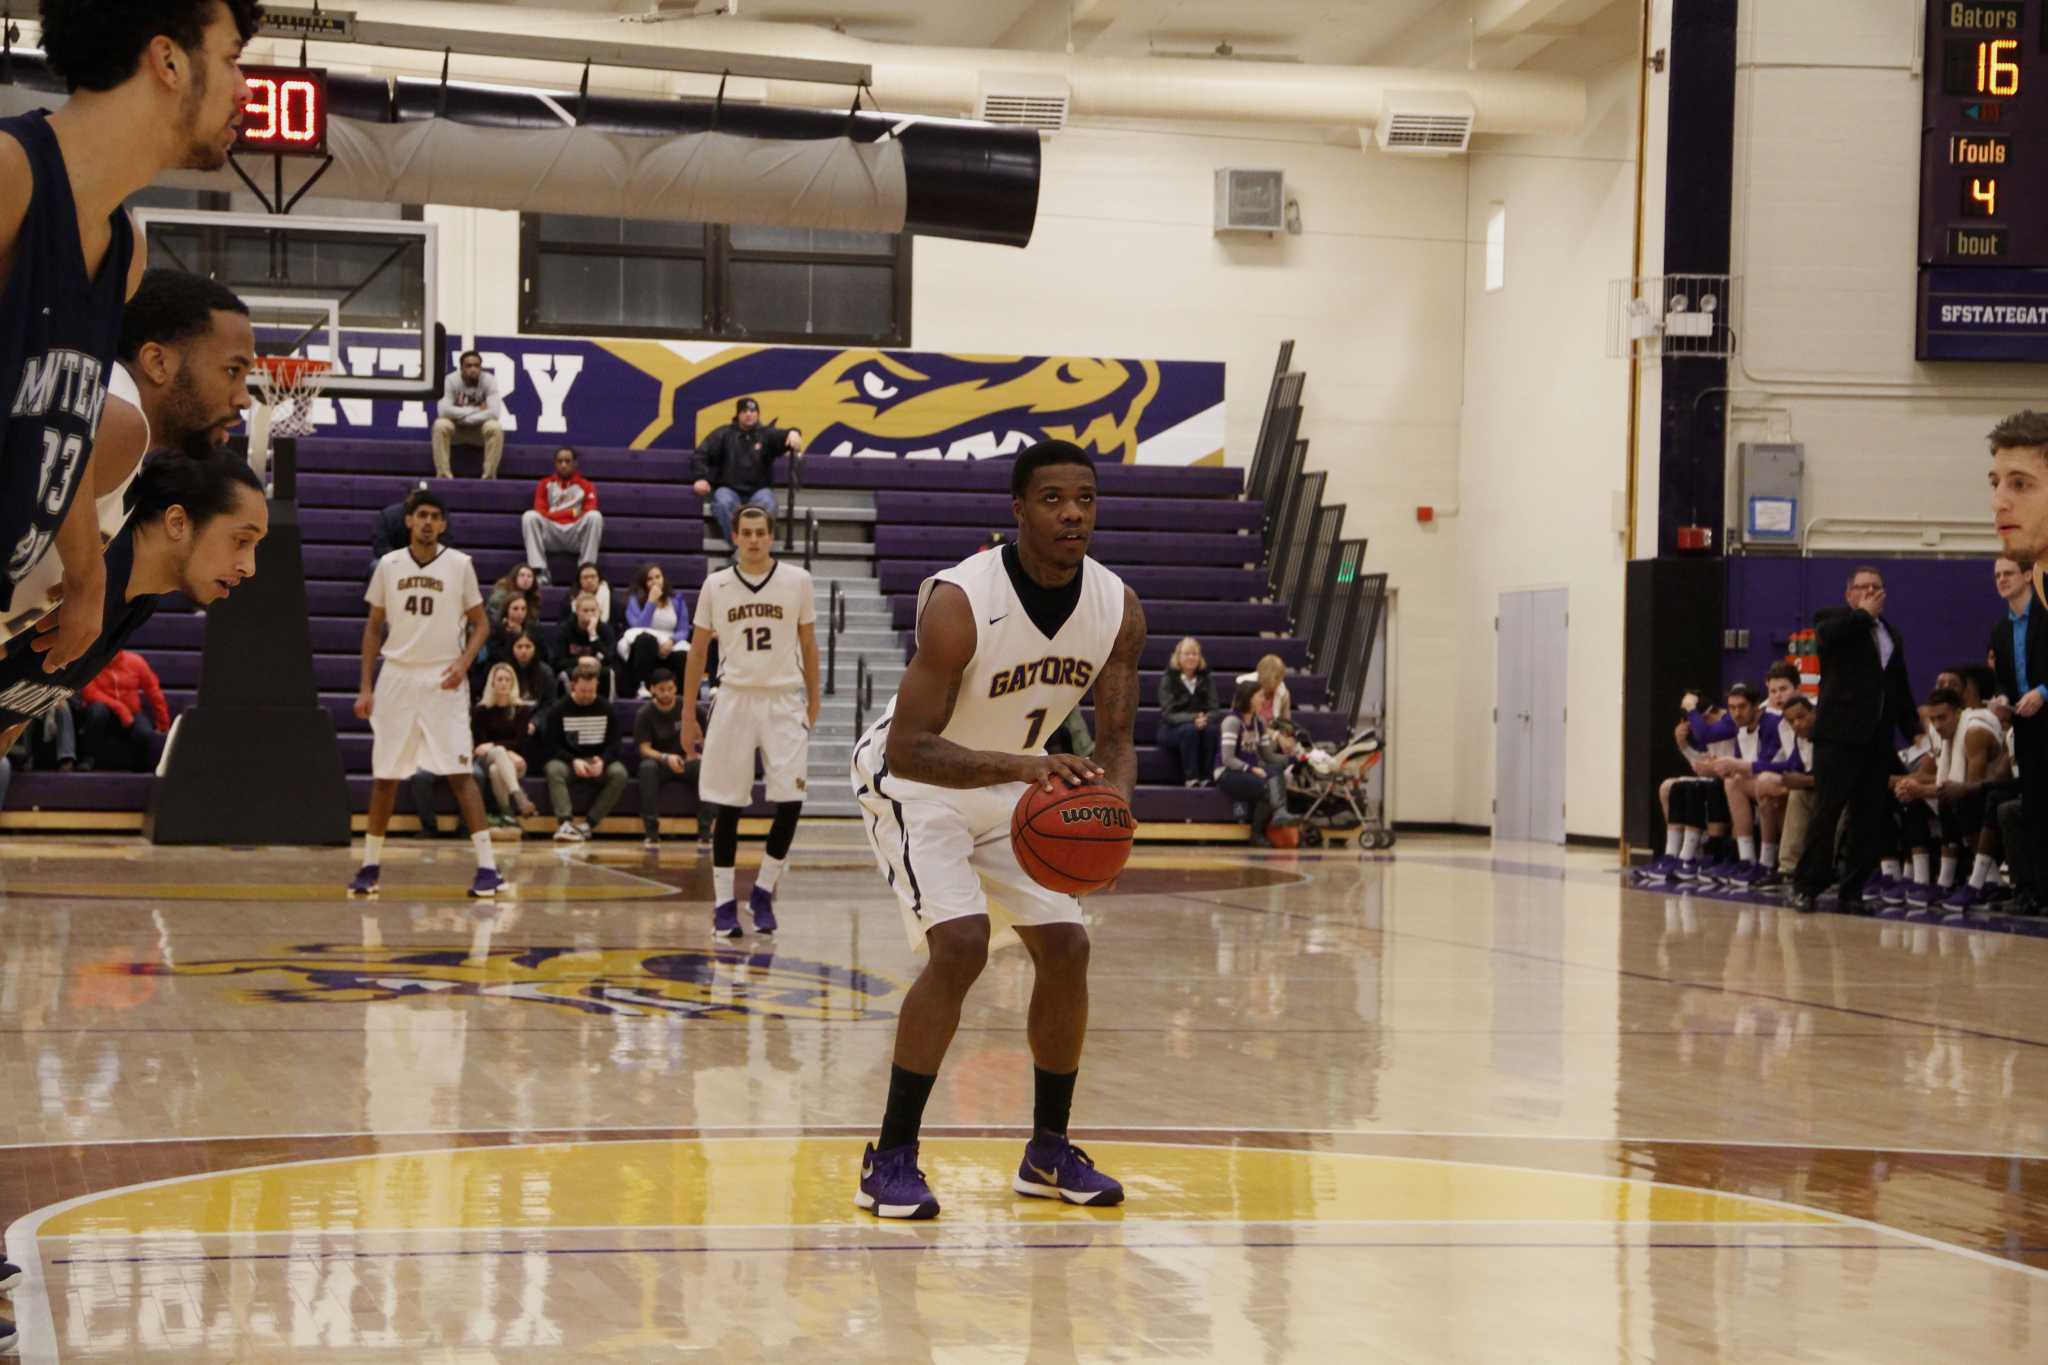 SF State Gator Warren Jackson (1) focuses on making a free throw during the men's basketball game against the Cal State Monterey Bay Otters at The Swamp Saturday, Jan. 23. The Gators won 85-79.